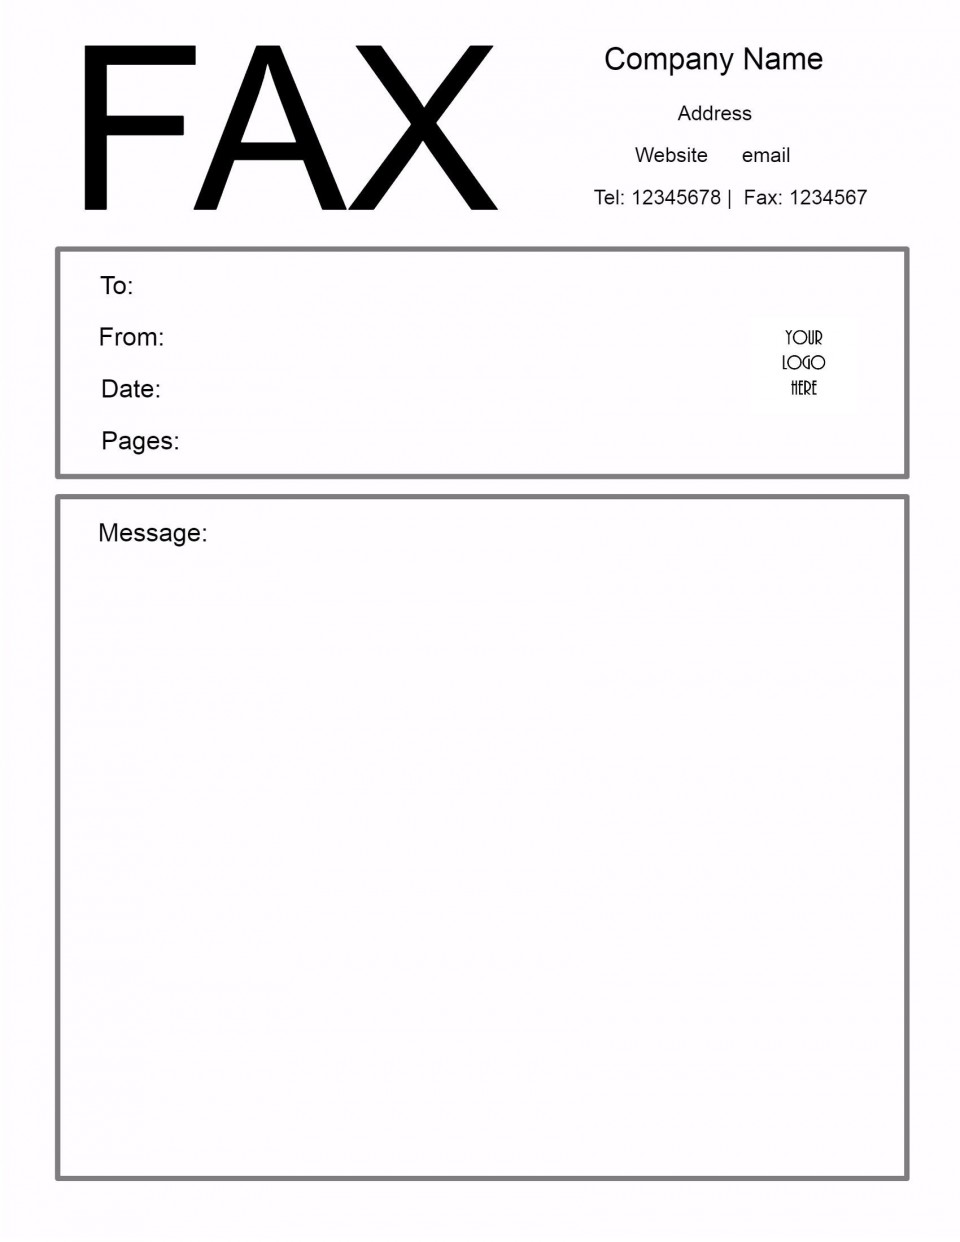 009 Excellent General Fax Cover Letter Template Highest Clarity  Sheet Word Confidential Example960